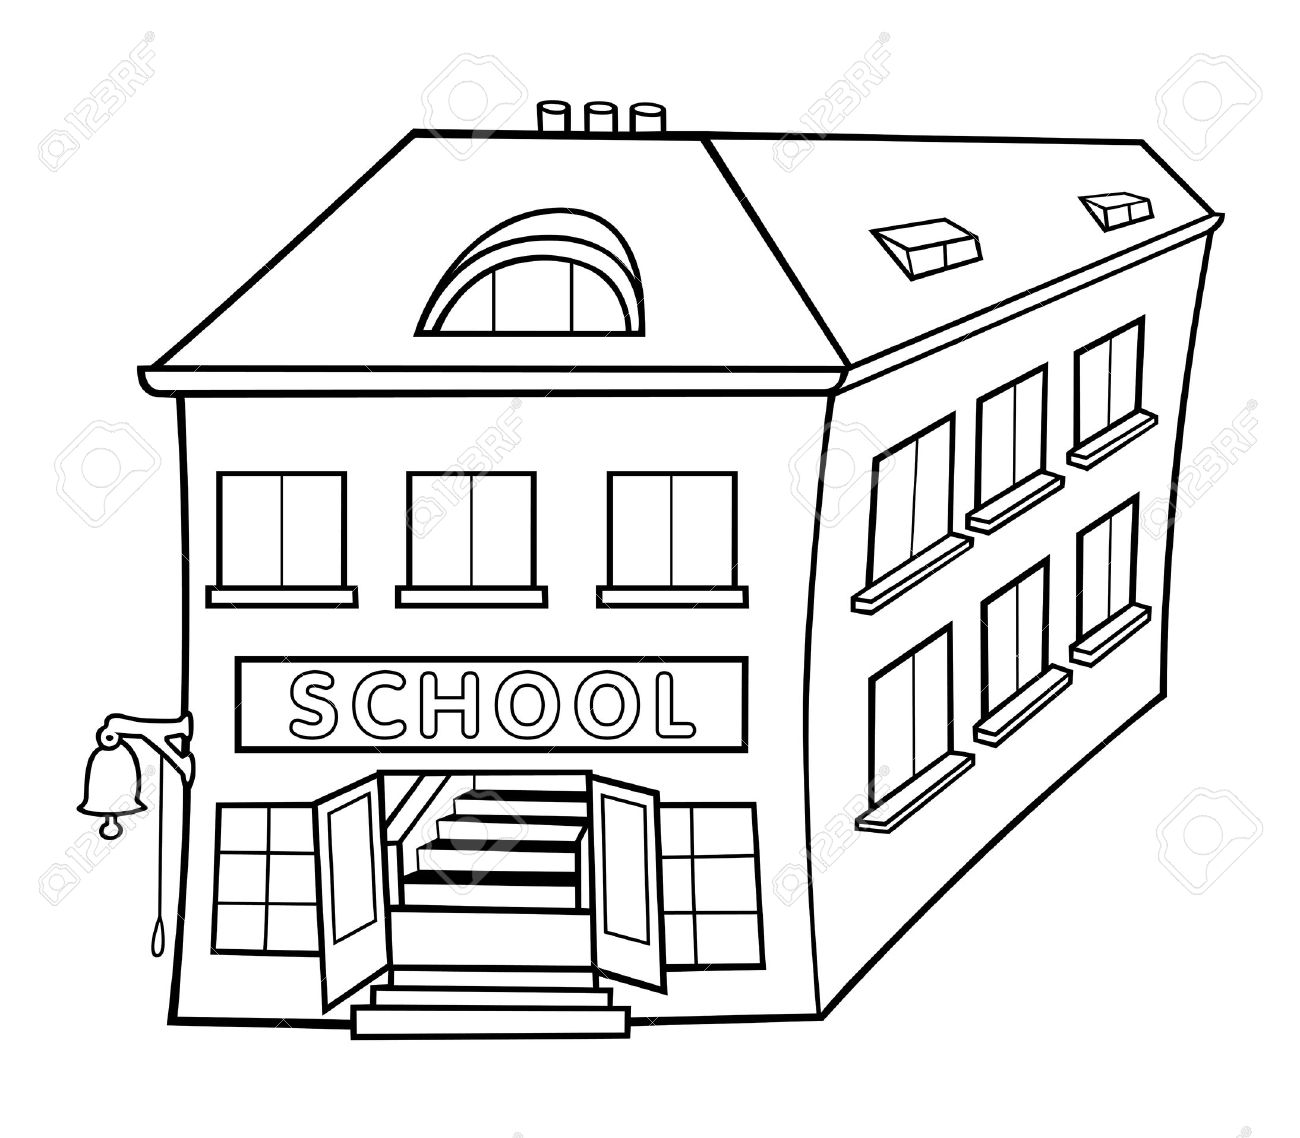 school - black and white cartoon illustration, royalty free cliparts